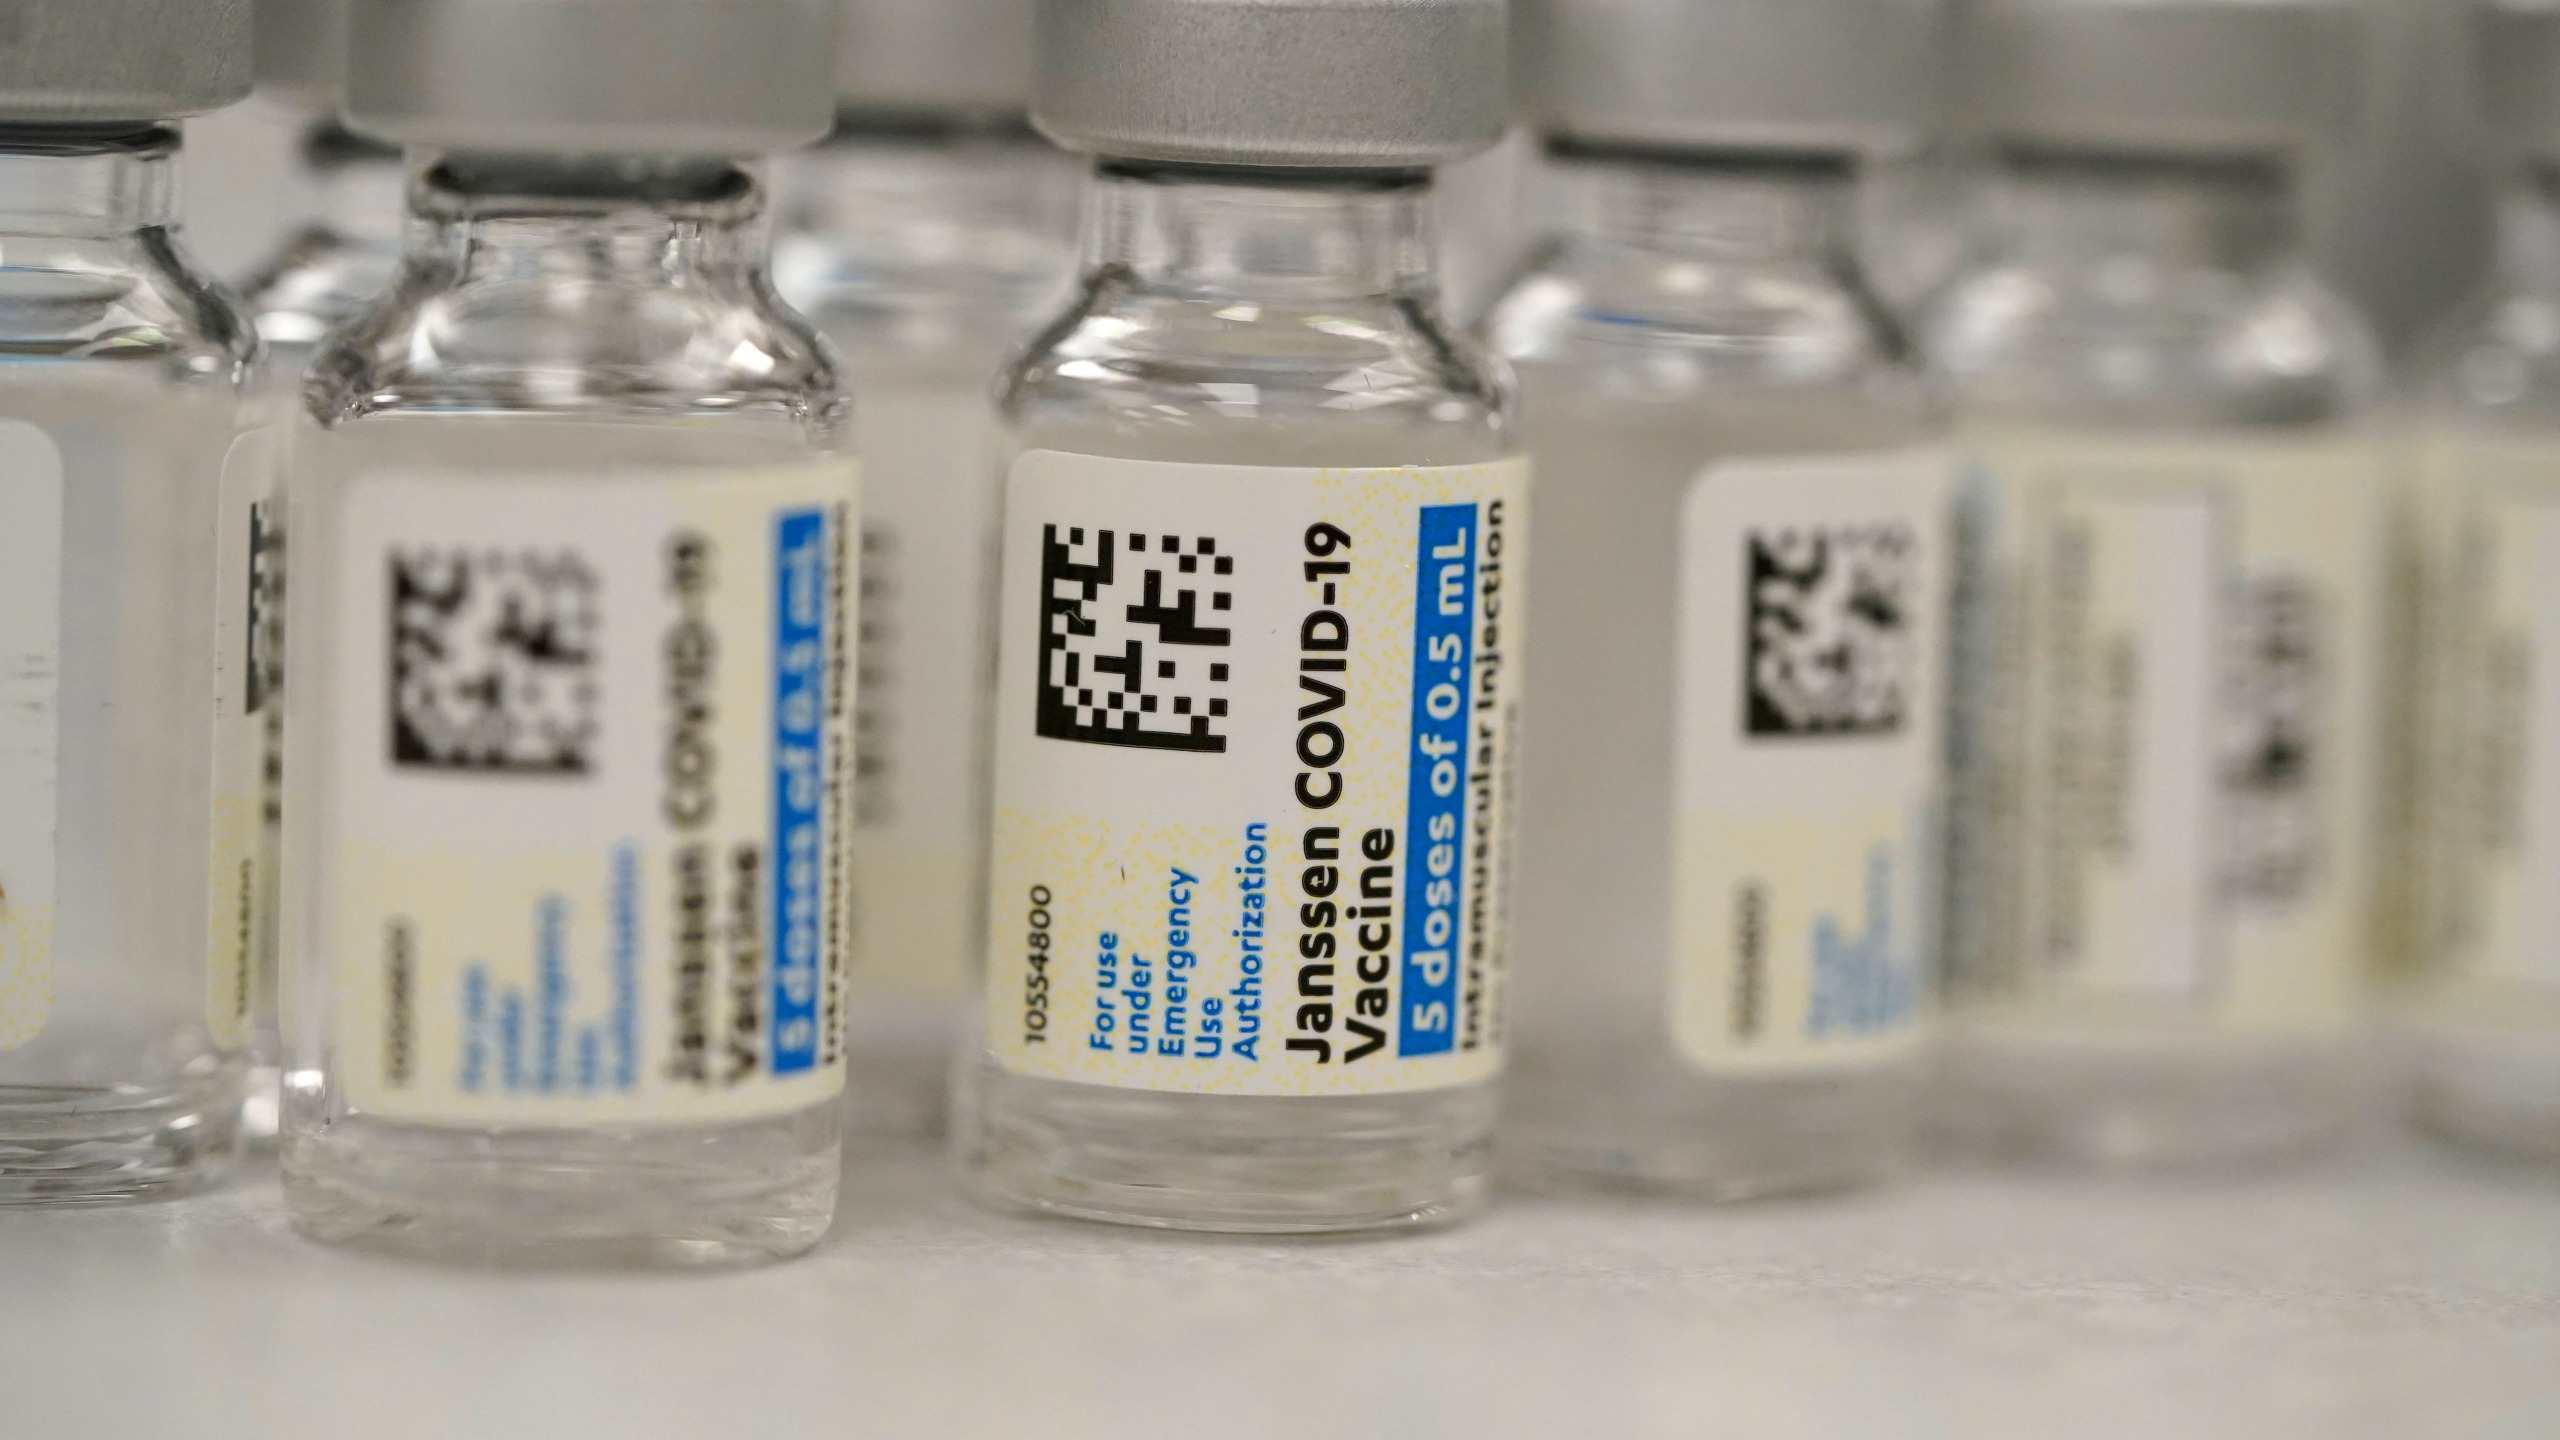 J&J vaccine paused over blood clots